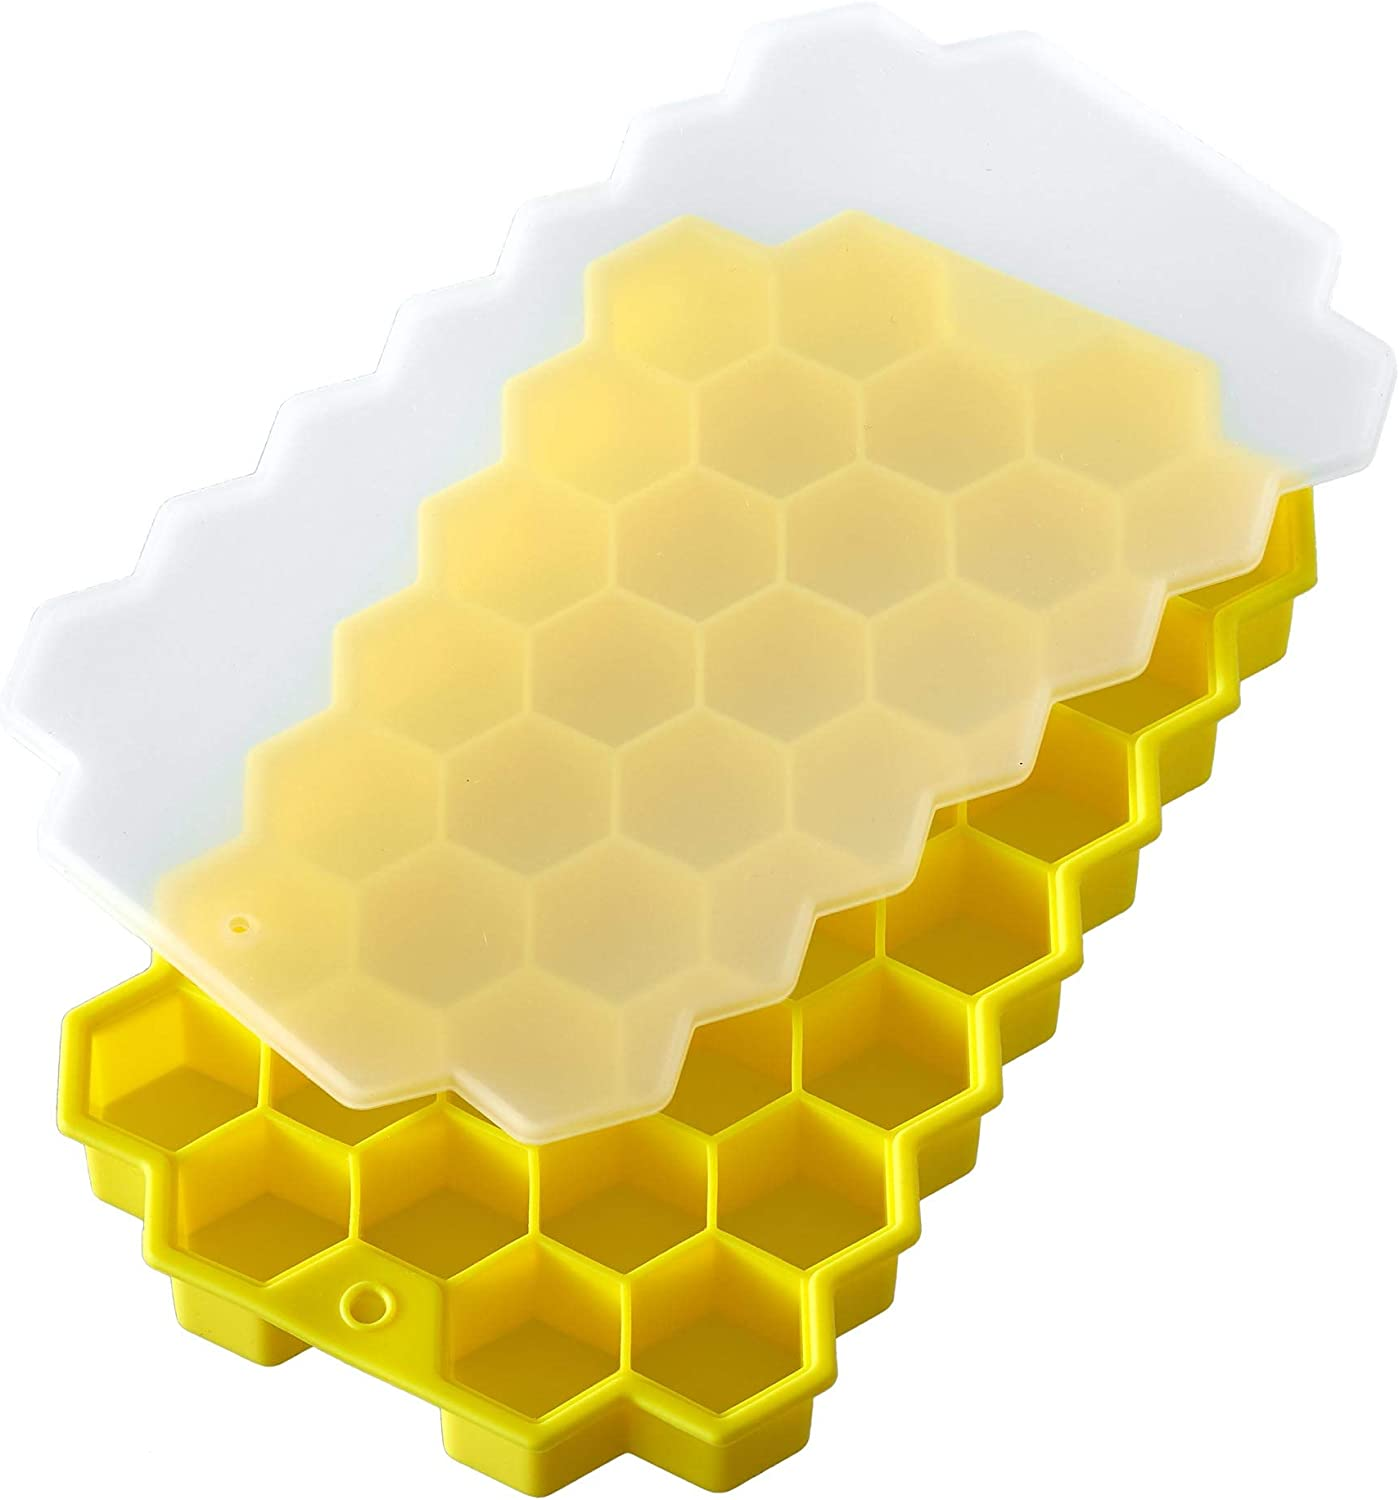 PrimeMed Stackable Honeycomb Ice Cube Trays – Food Grade Silicone Reusable Ice Mold (Yellow) (1 Pack)